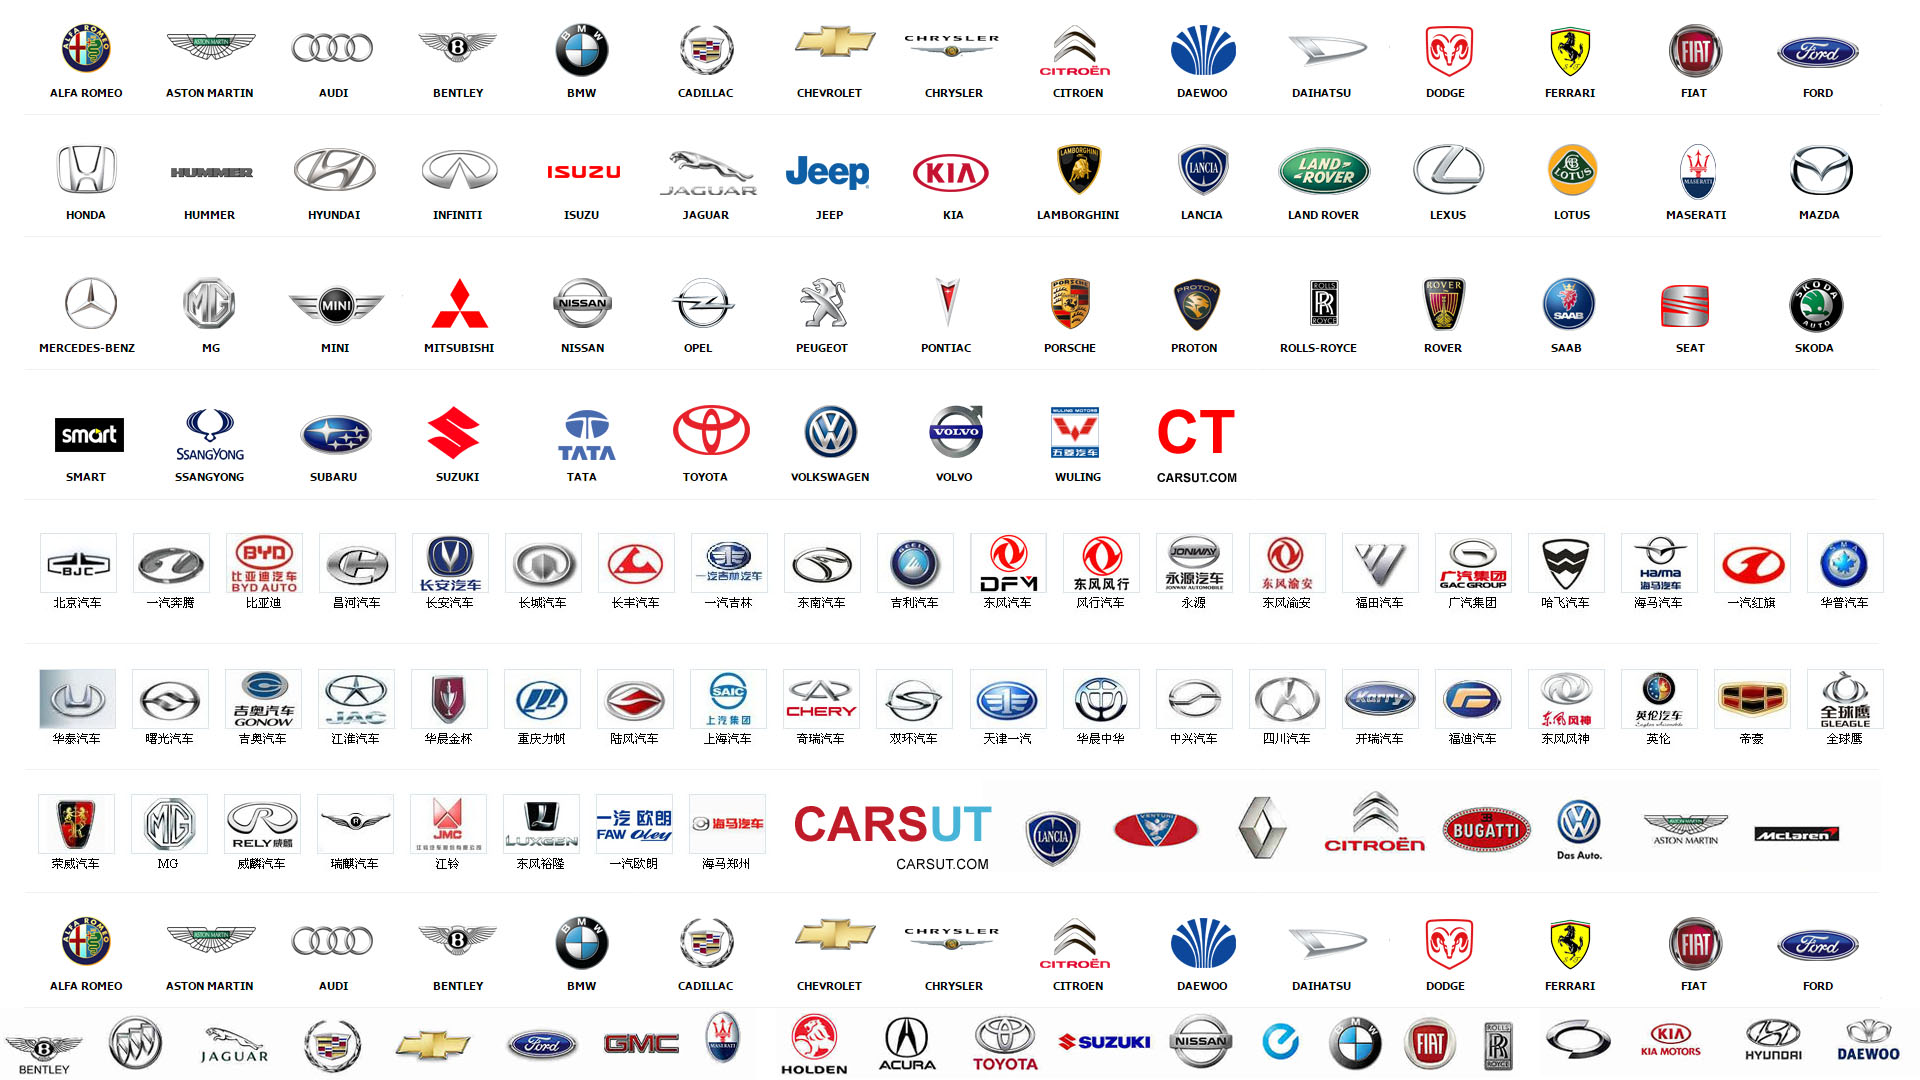 All Car Brands >> Car Company Logos Carsut Understand Cars And Drive Better